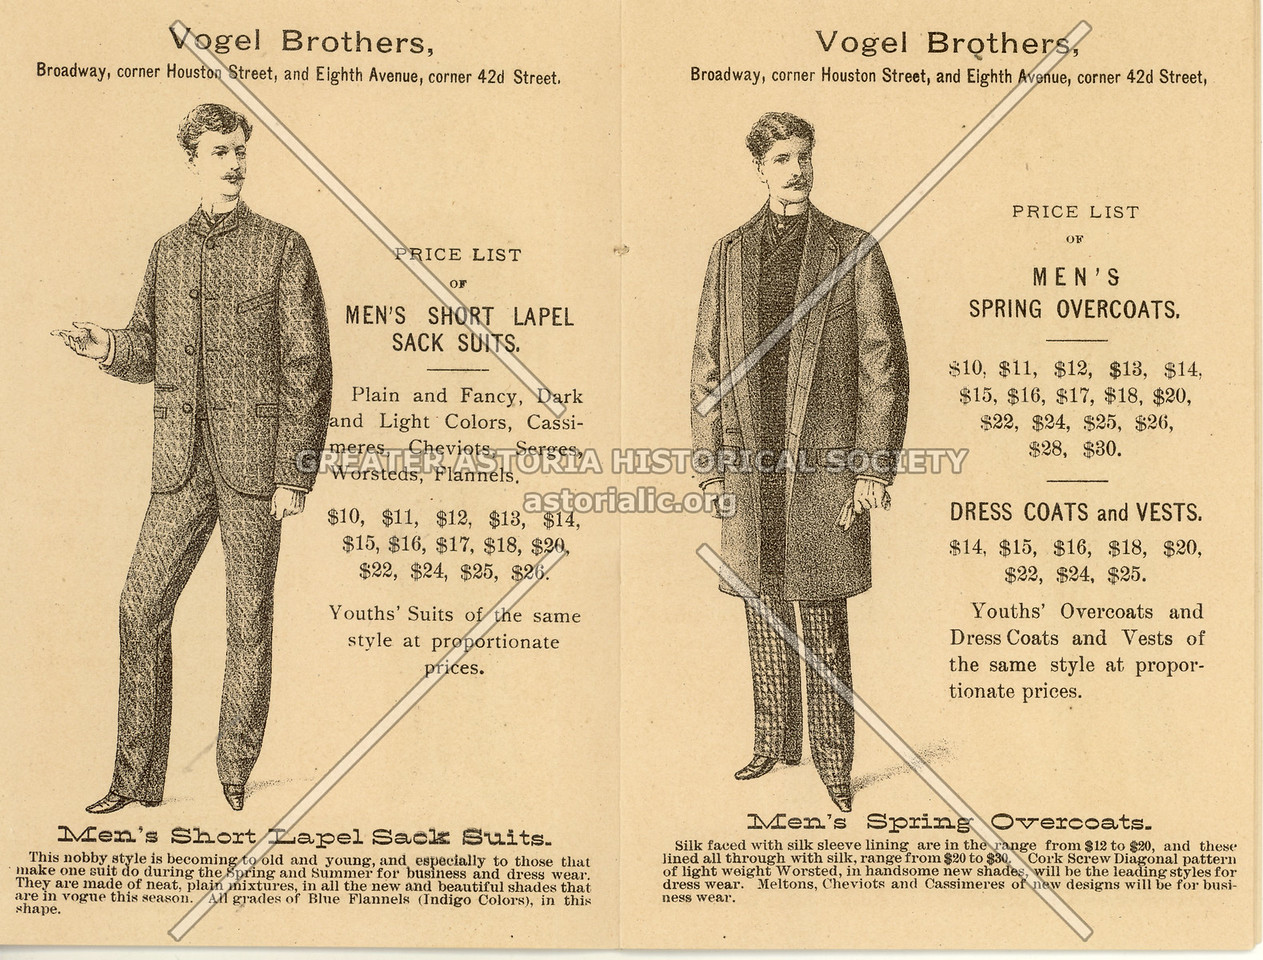 Vogel Brothers, 606 B'way (Houston)  & 651 8th Ave (42nd St), NYC